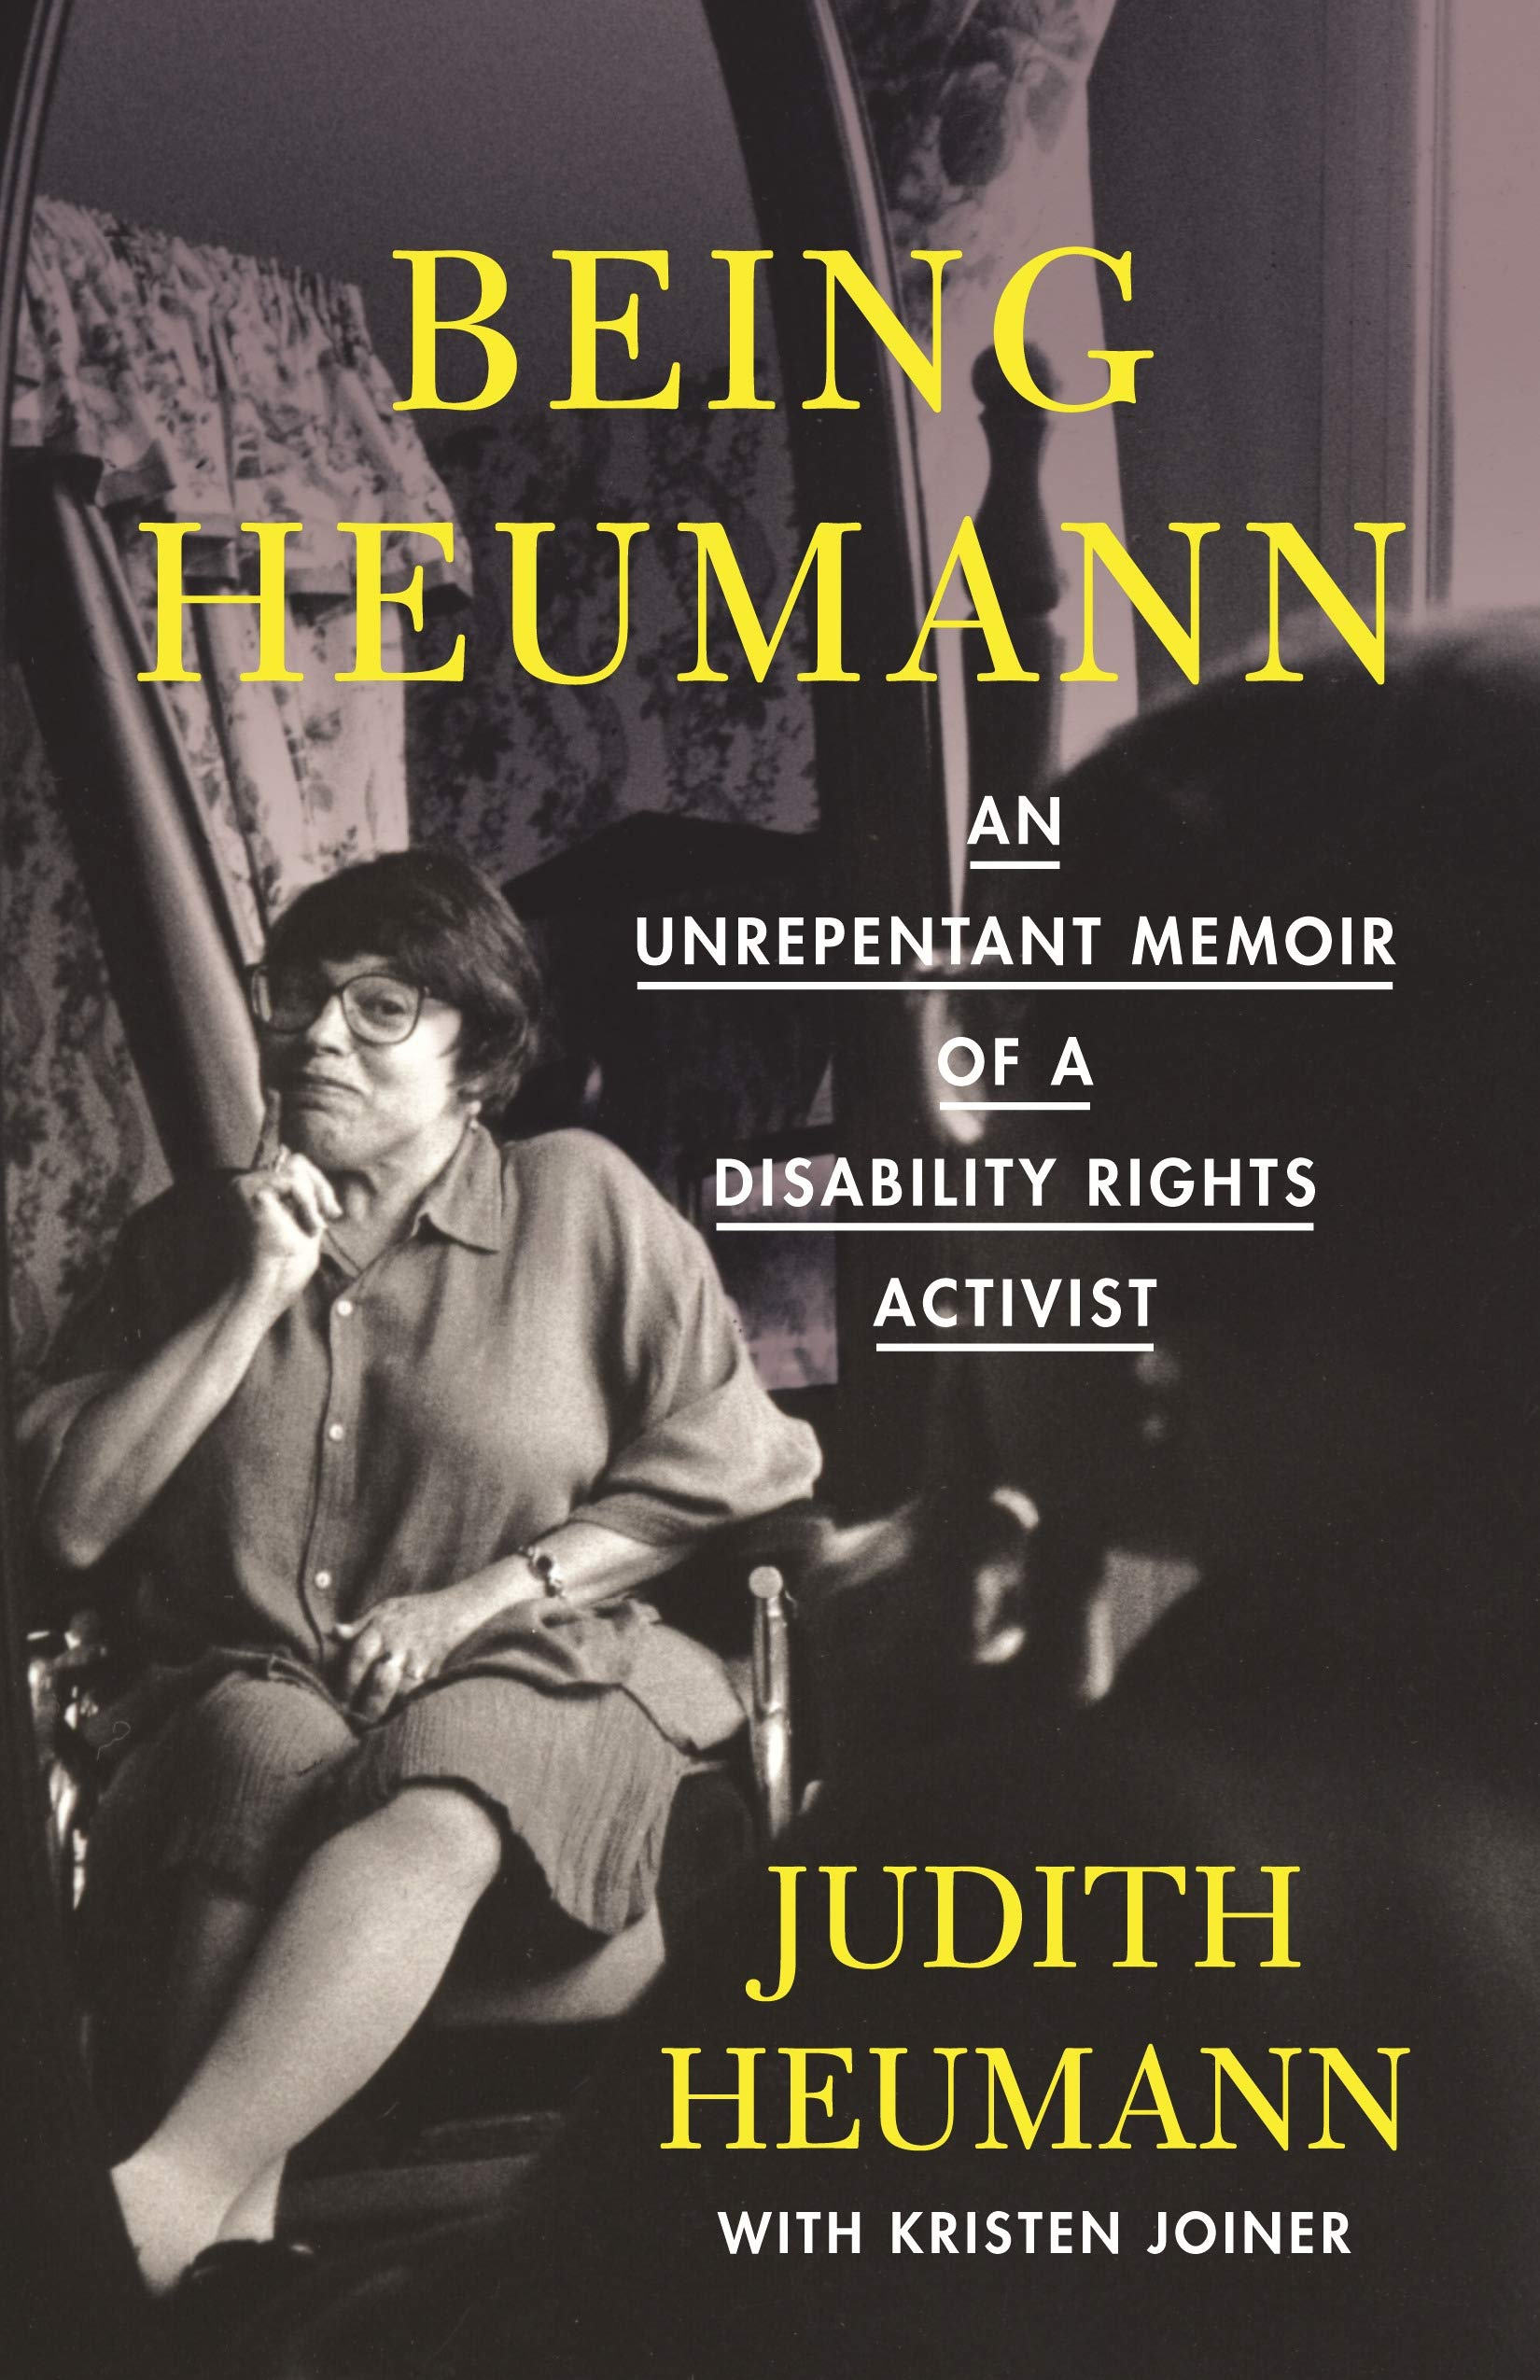 Being Heumann (an unrepentant memoir of a disability rights activist) by Judith Heumann